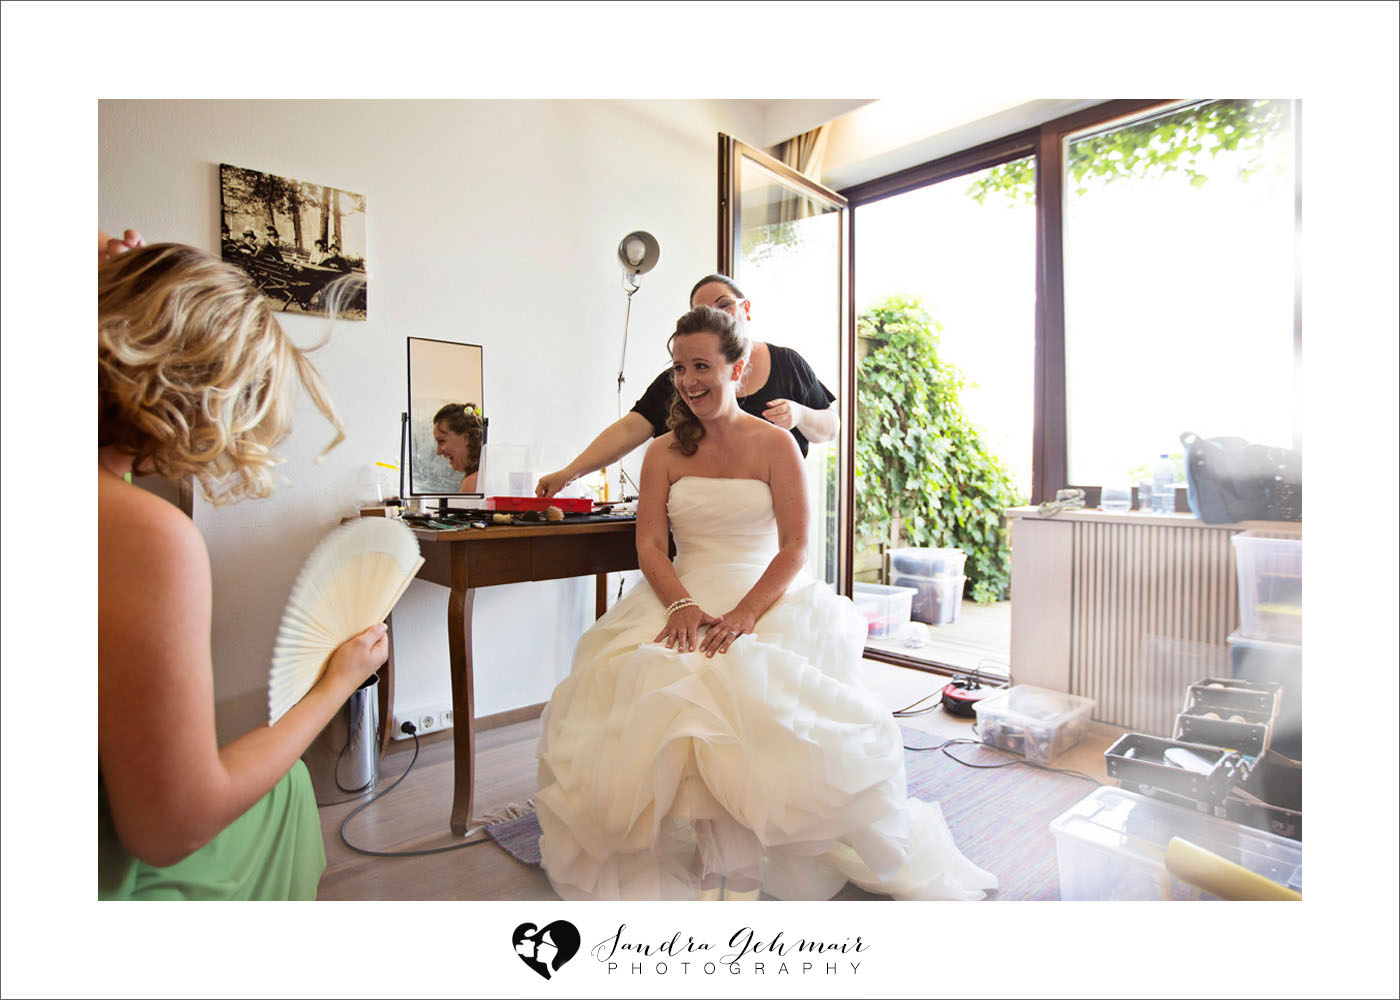 007_heiraten_am_see_spitzvilla_sandra_gehmair